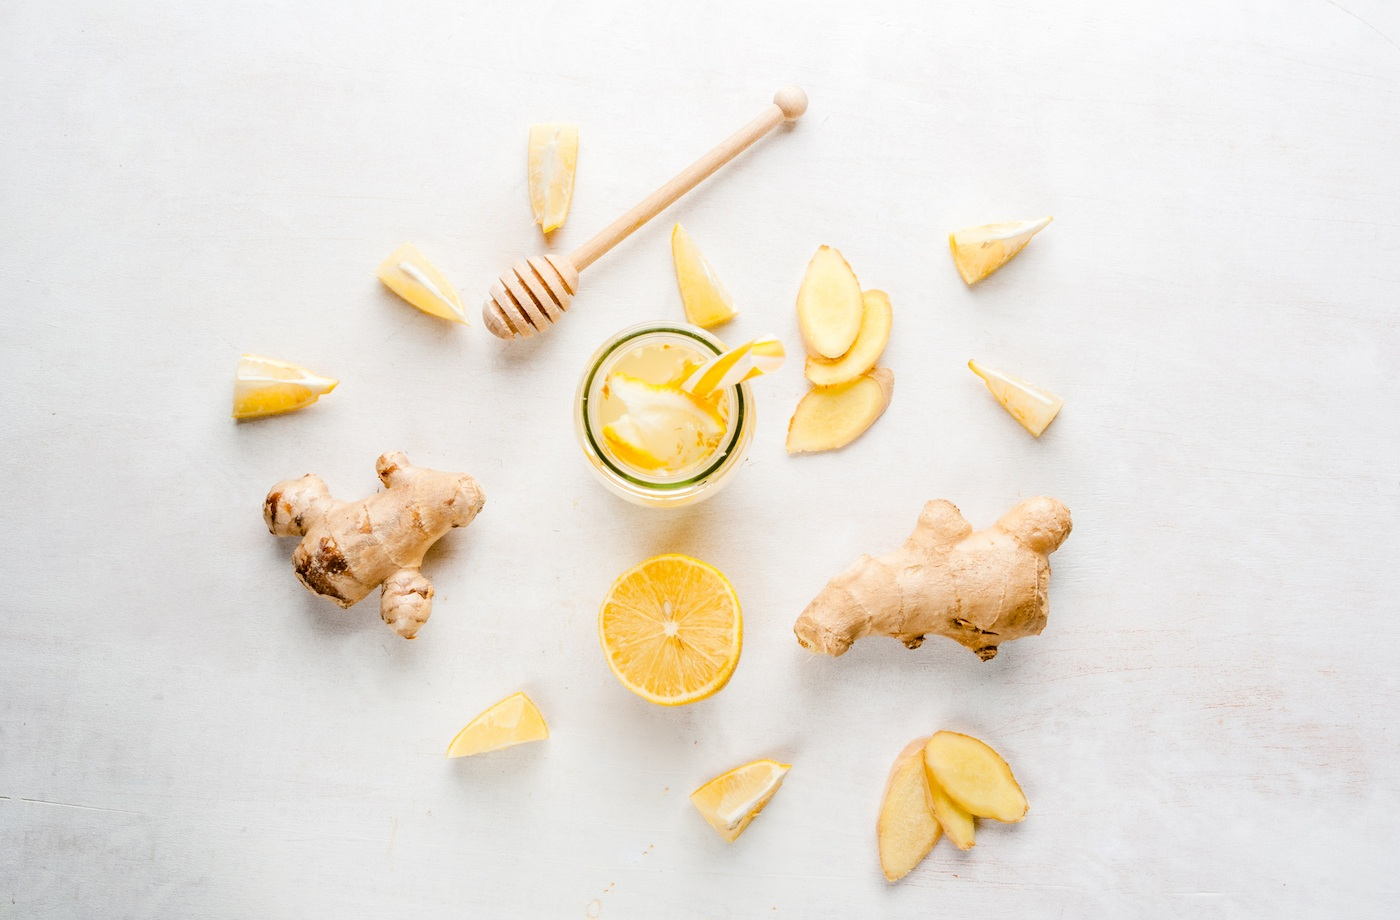 Thumbnail for This 2-step trick will make cooking with ginger so much easier